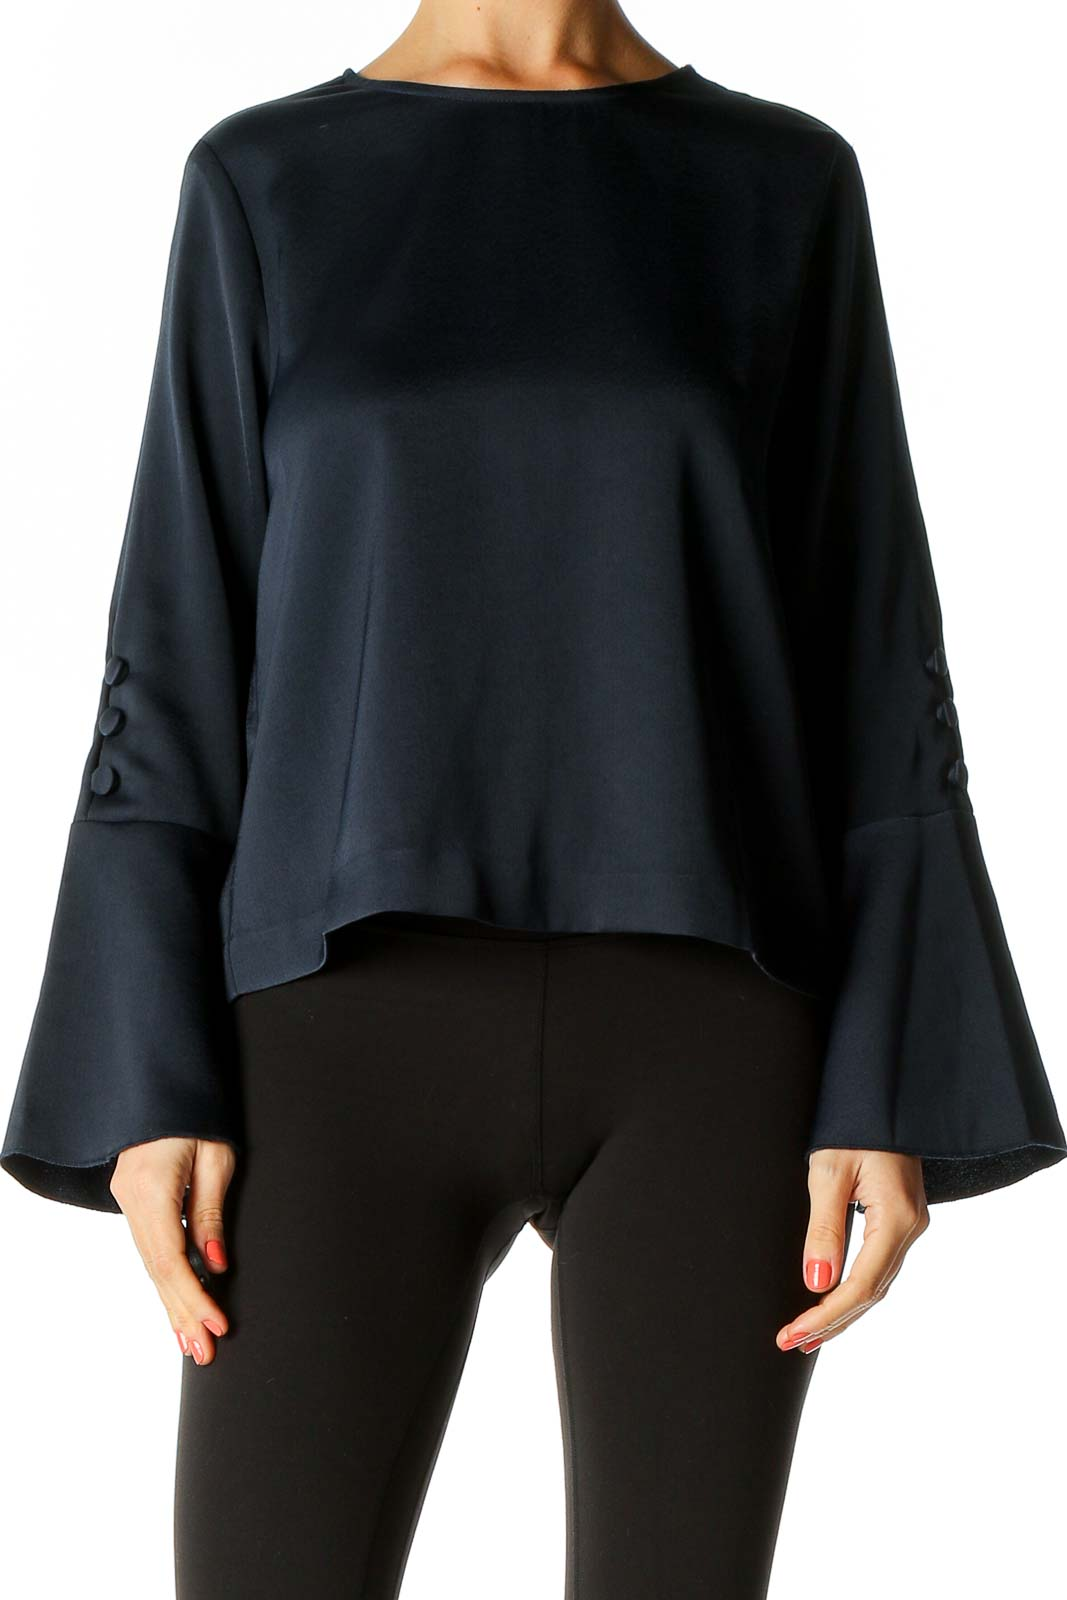 Blue Solid Chic Blouse Front